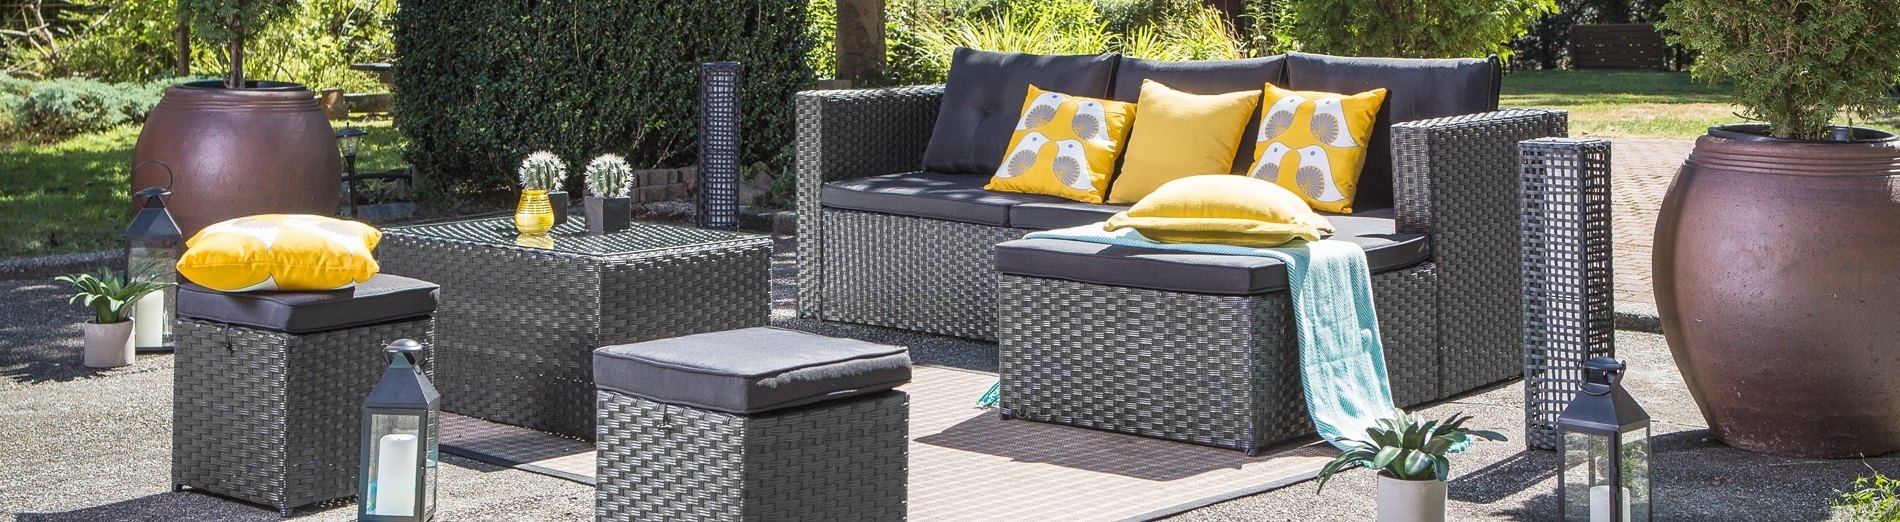 Preferred Edmonton Patio Conversation Sets With Conversation Sets (View 4 of 20)